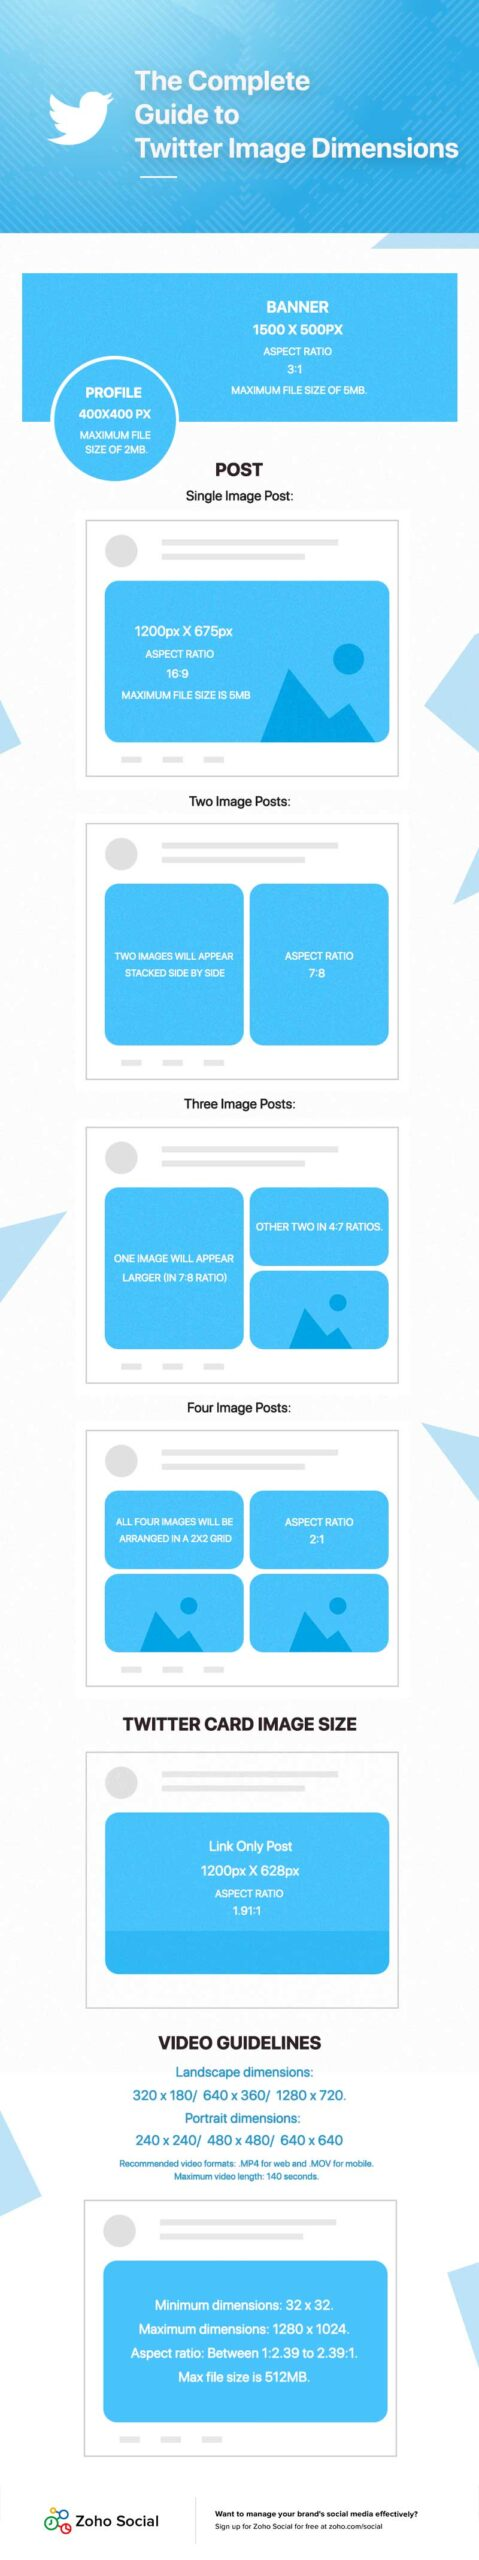 twitter-image-dimensions-infographic